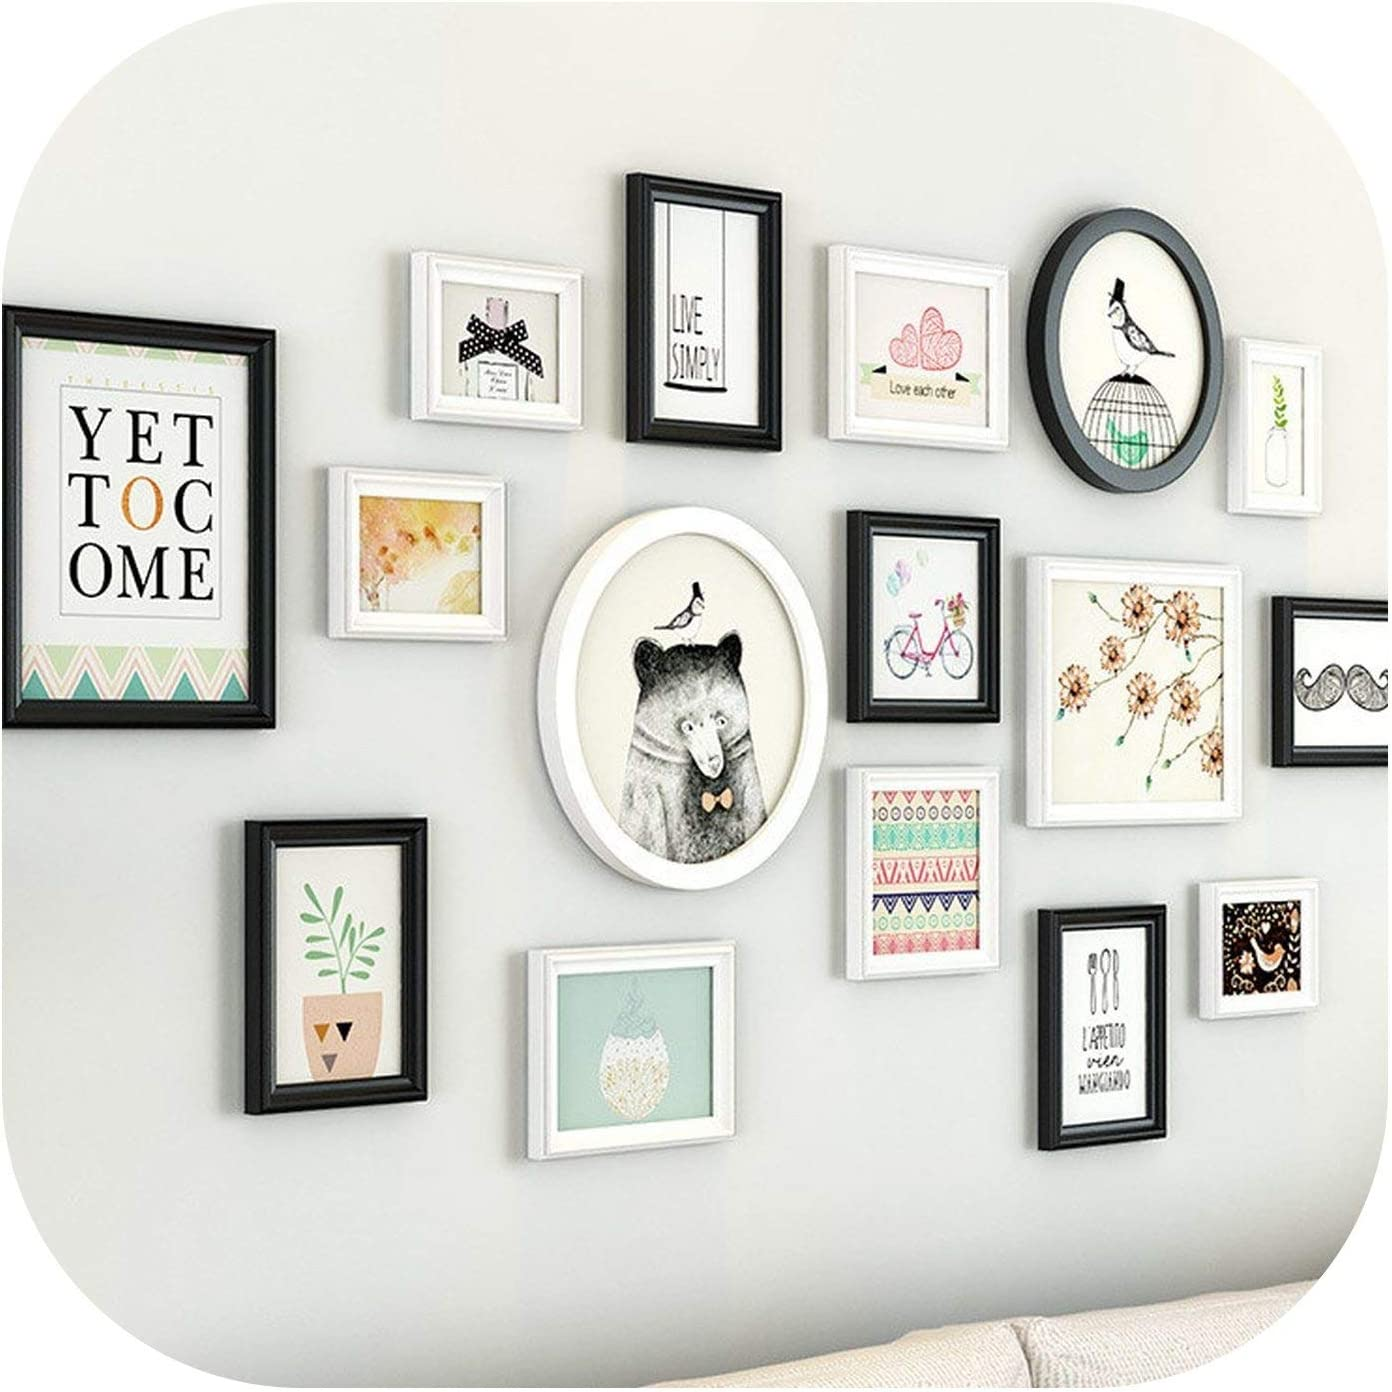 How To Decorate A Frame Walls